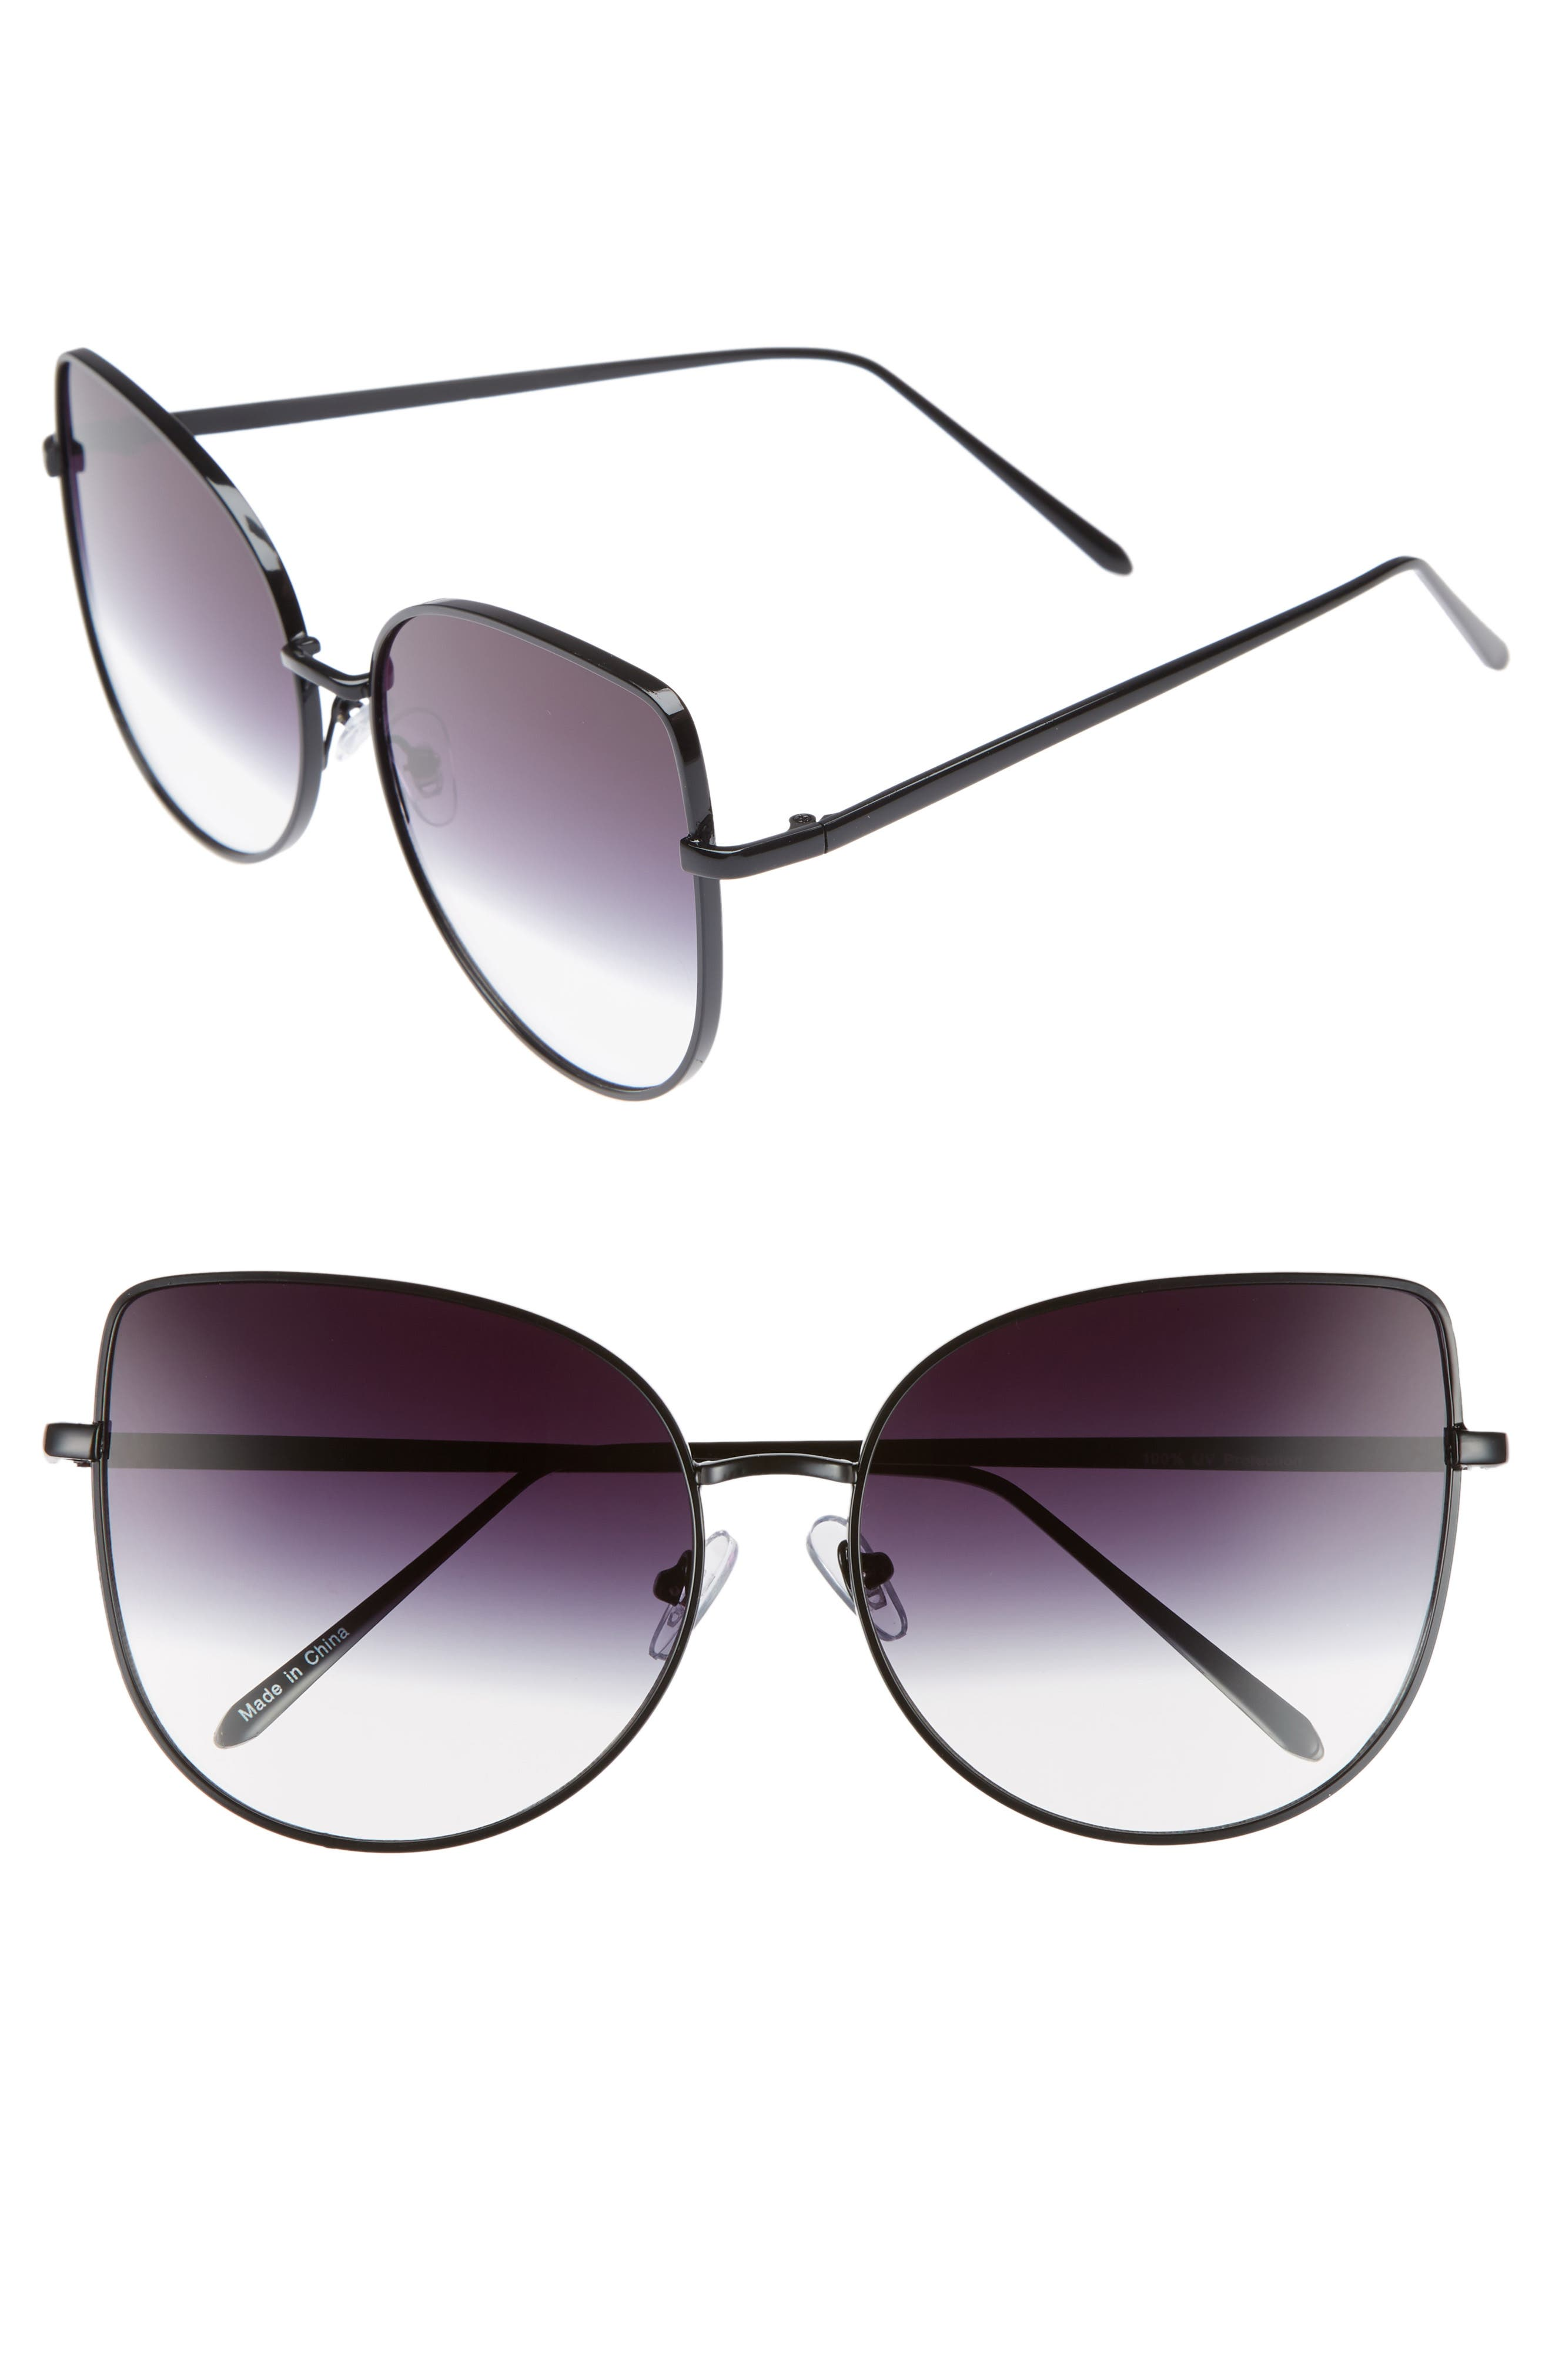 60mm Metal Cat Eye Sunglasses,                             Main thumbnail 1, color,                             Black/ Fade To Clear